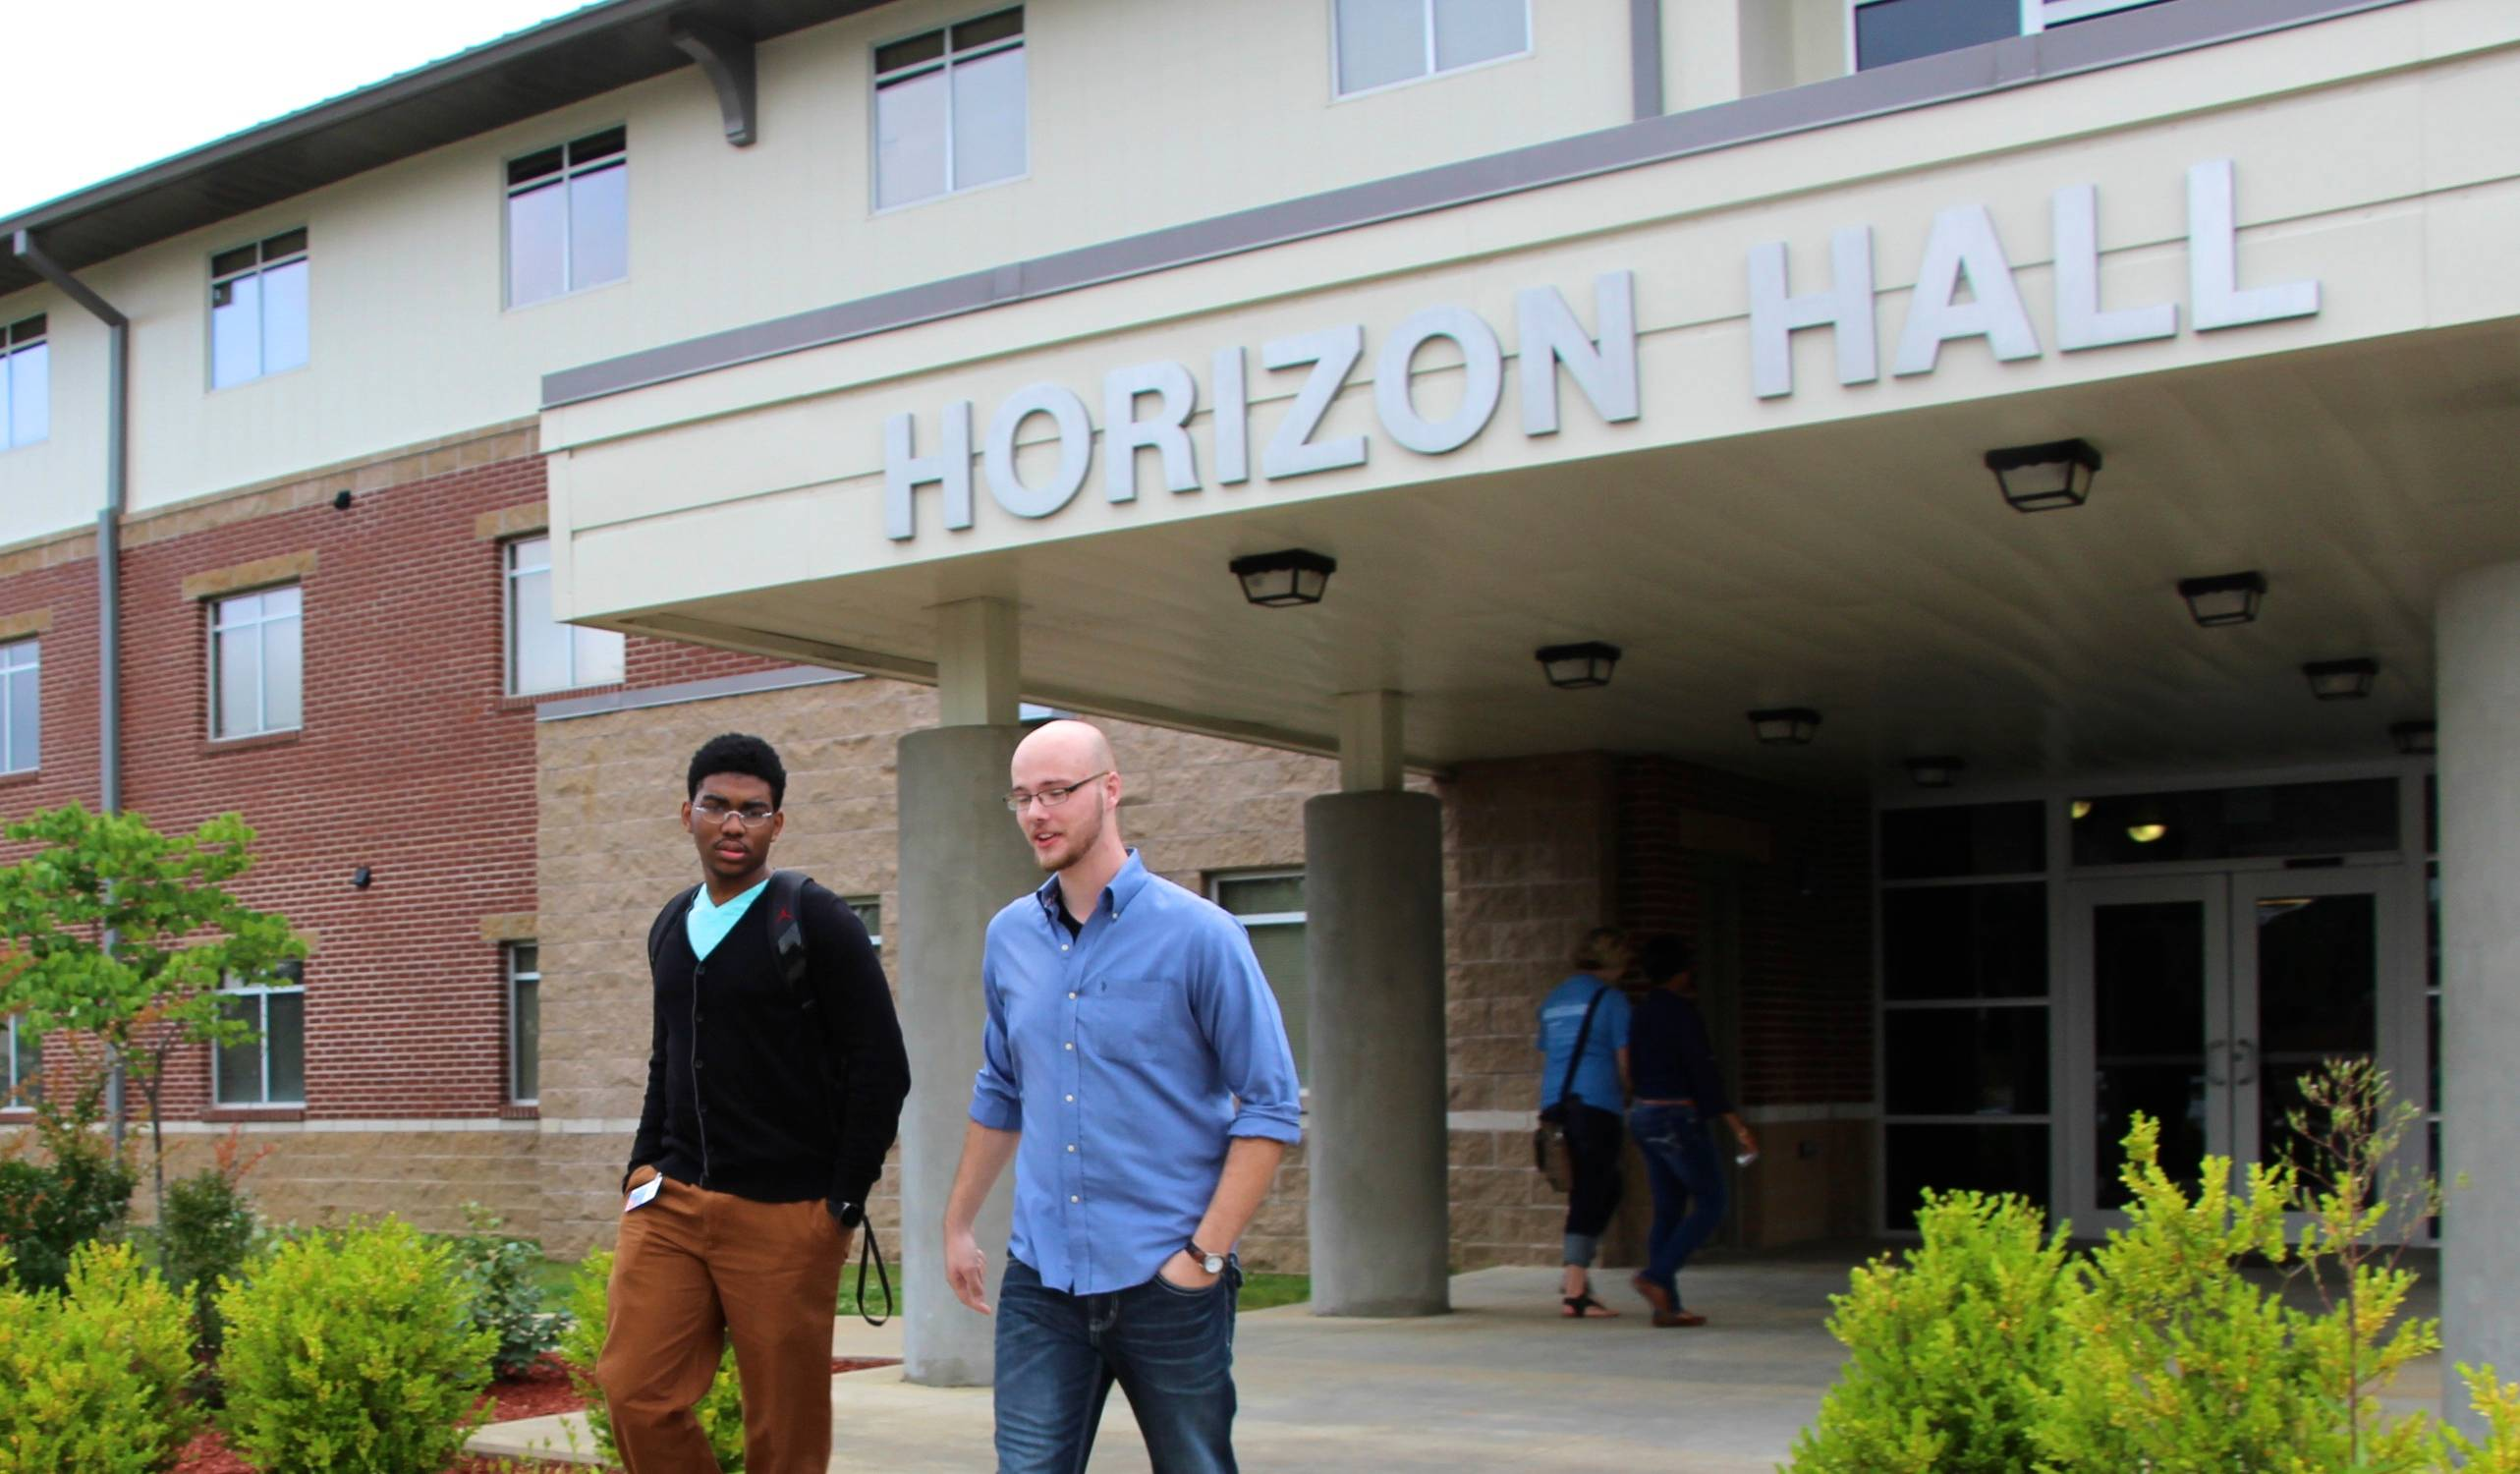 students walking by Horizon Hall